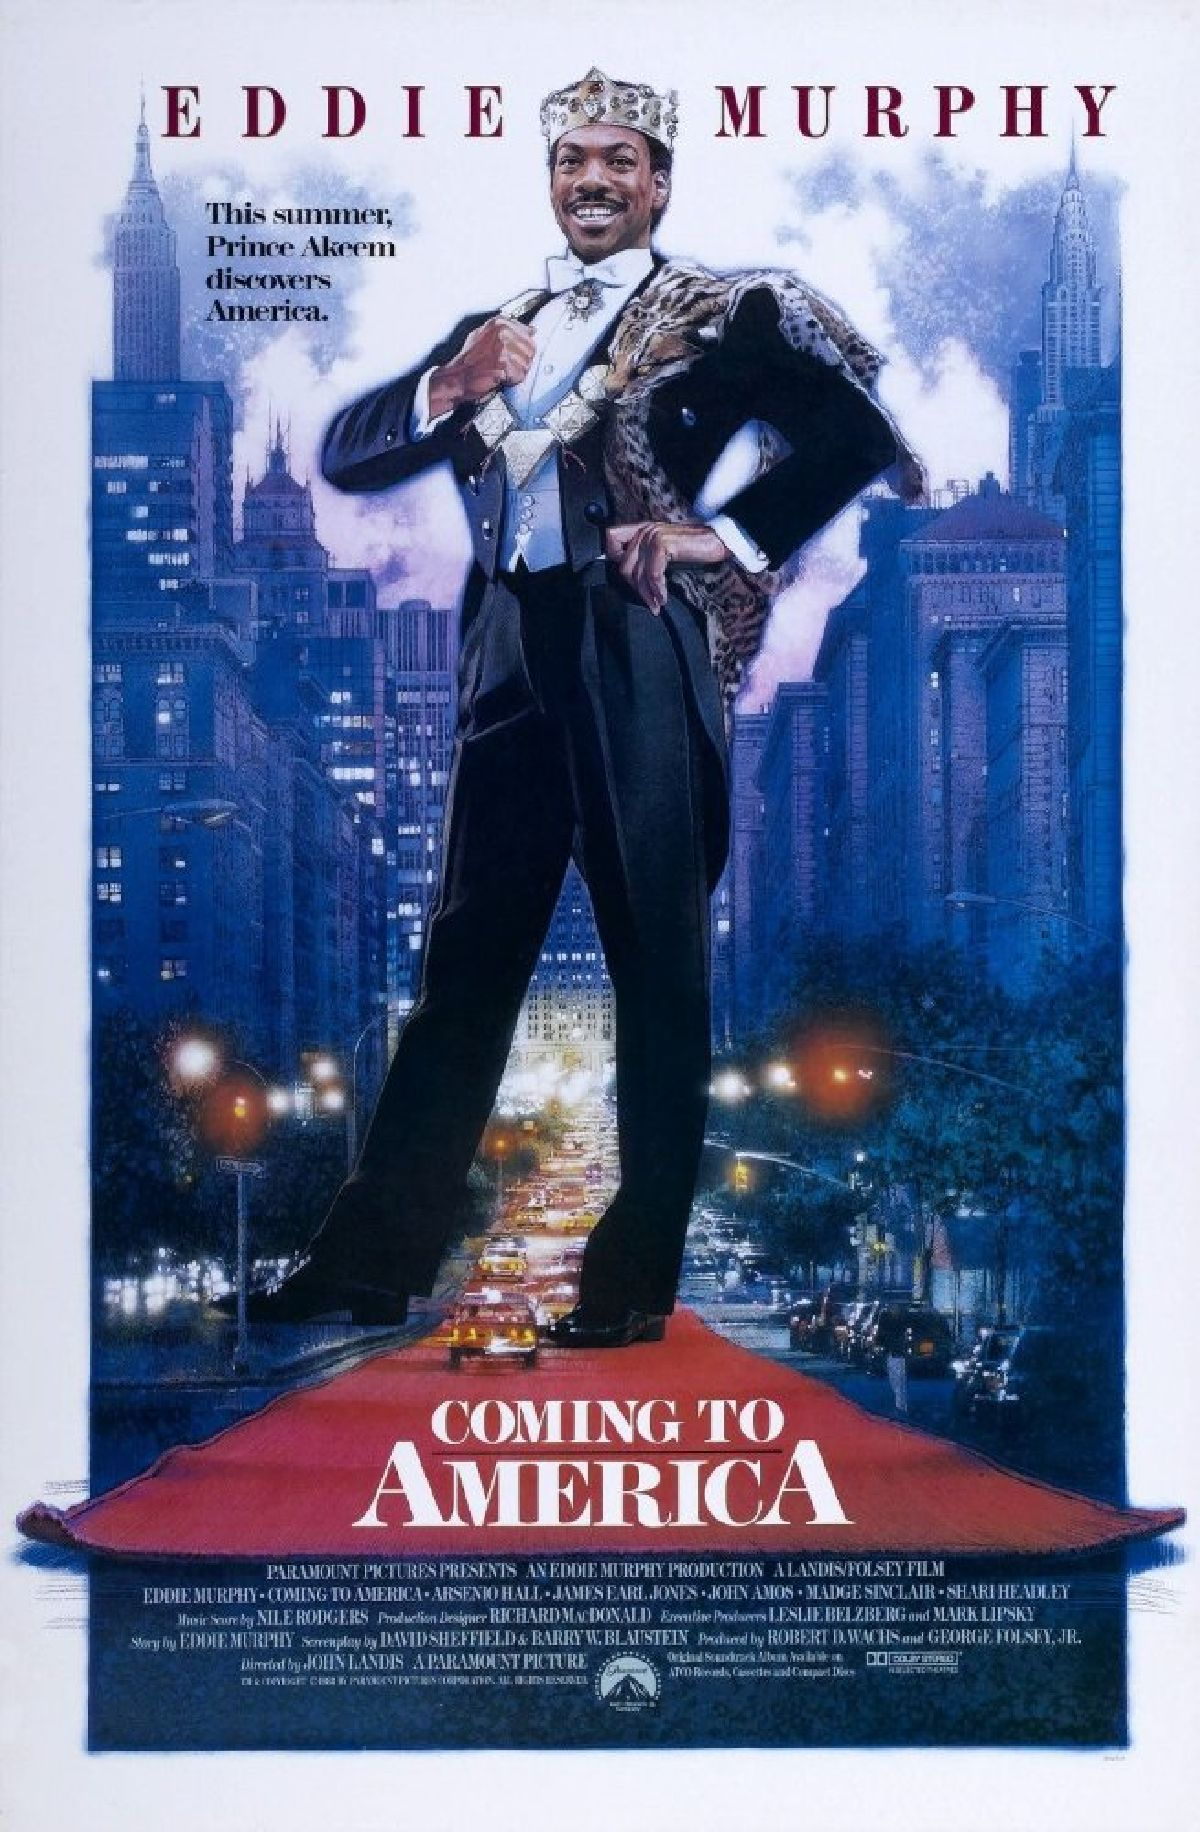 'Coming To America' movie poster